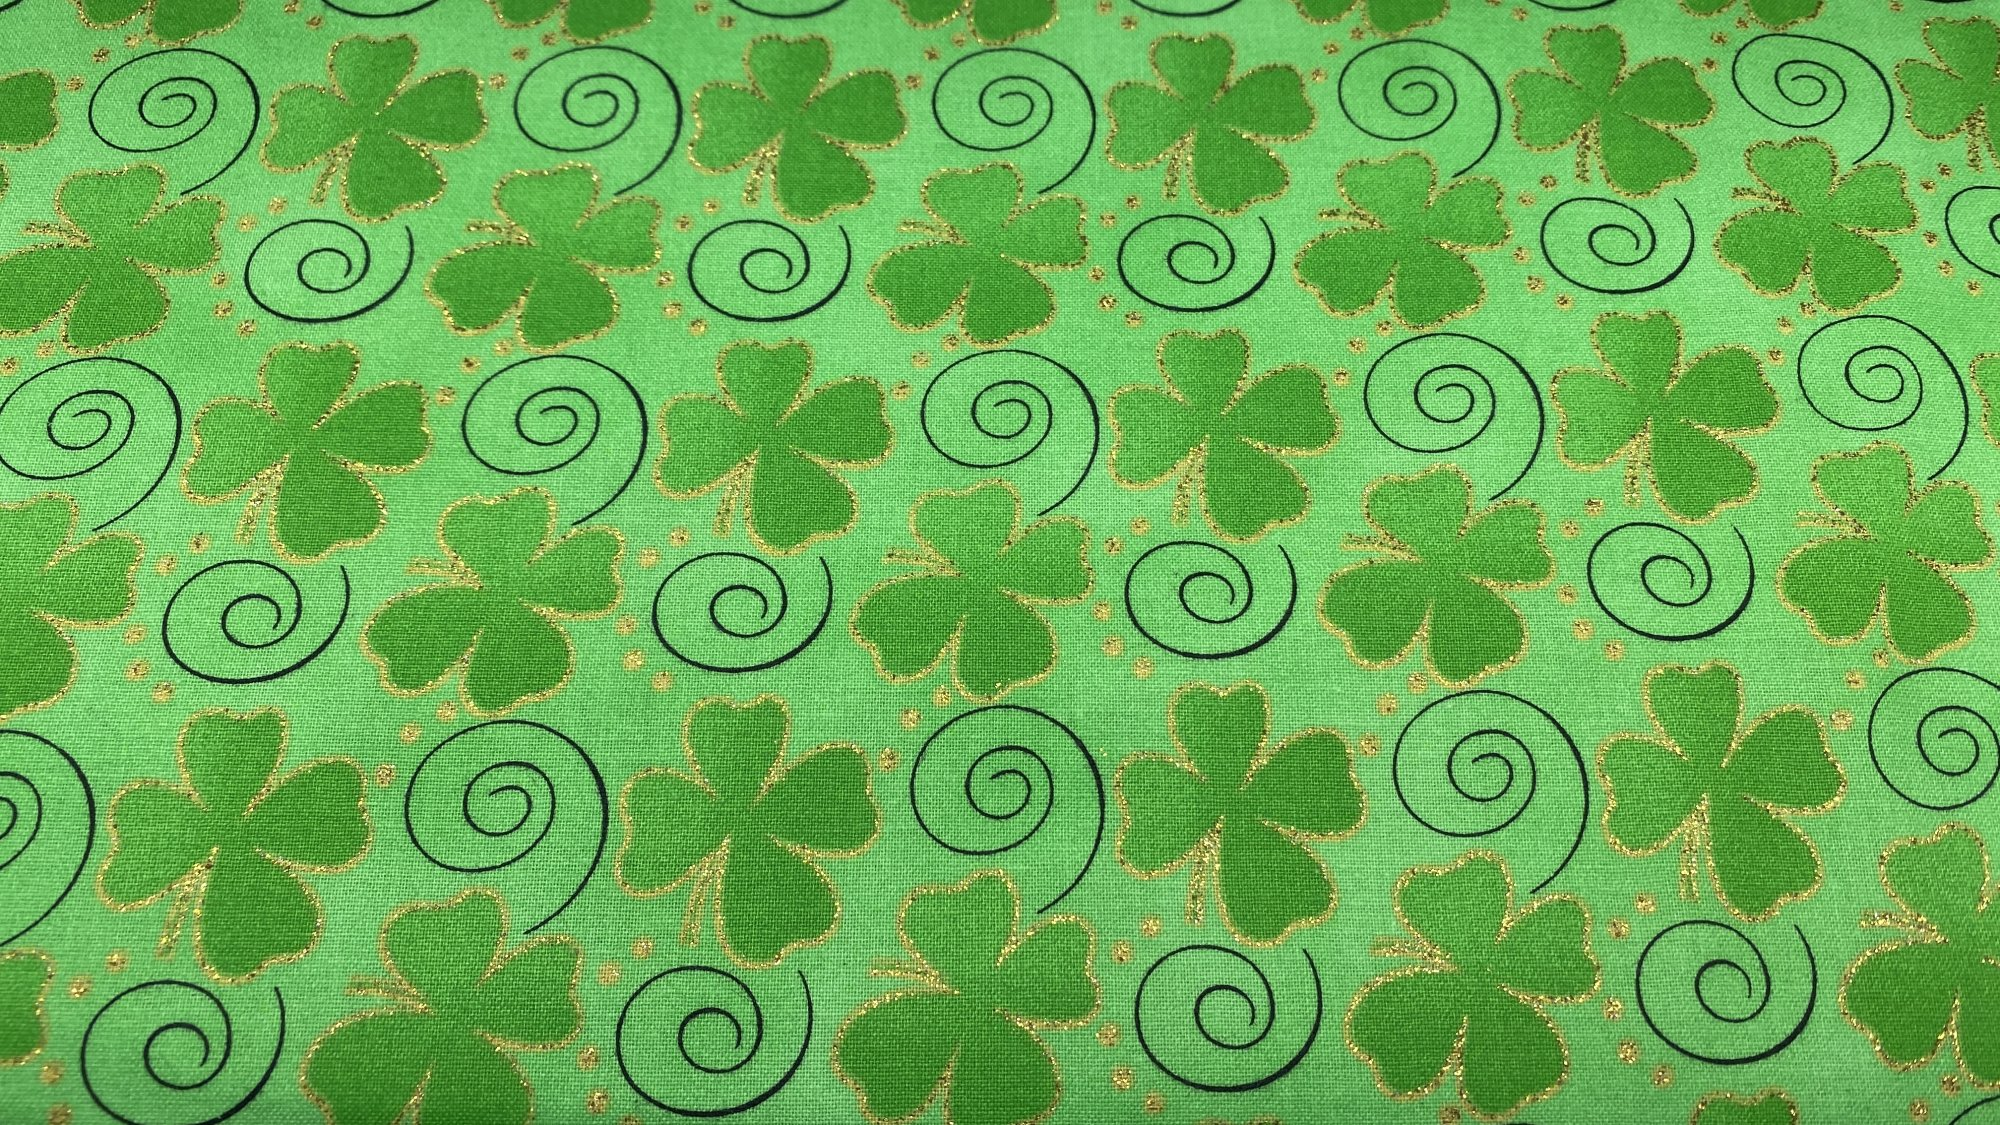 St. Patrick's Day Clover and Swirl on Green